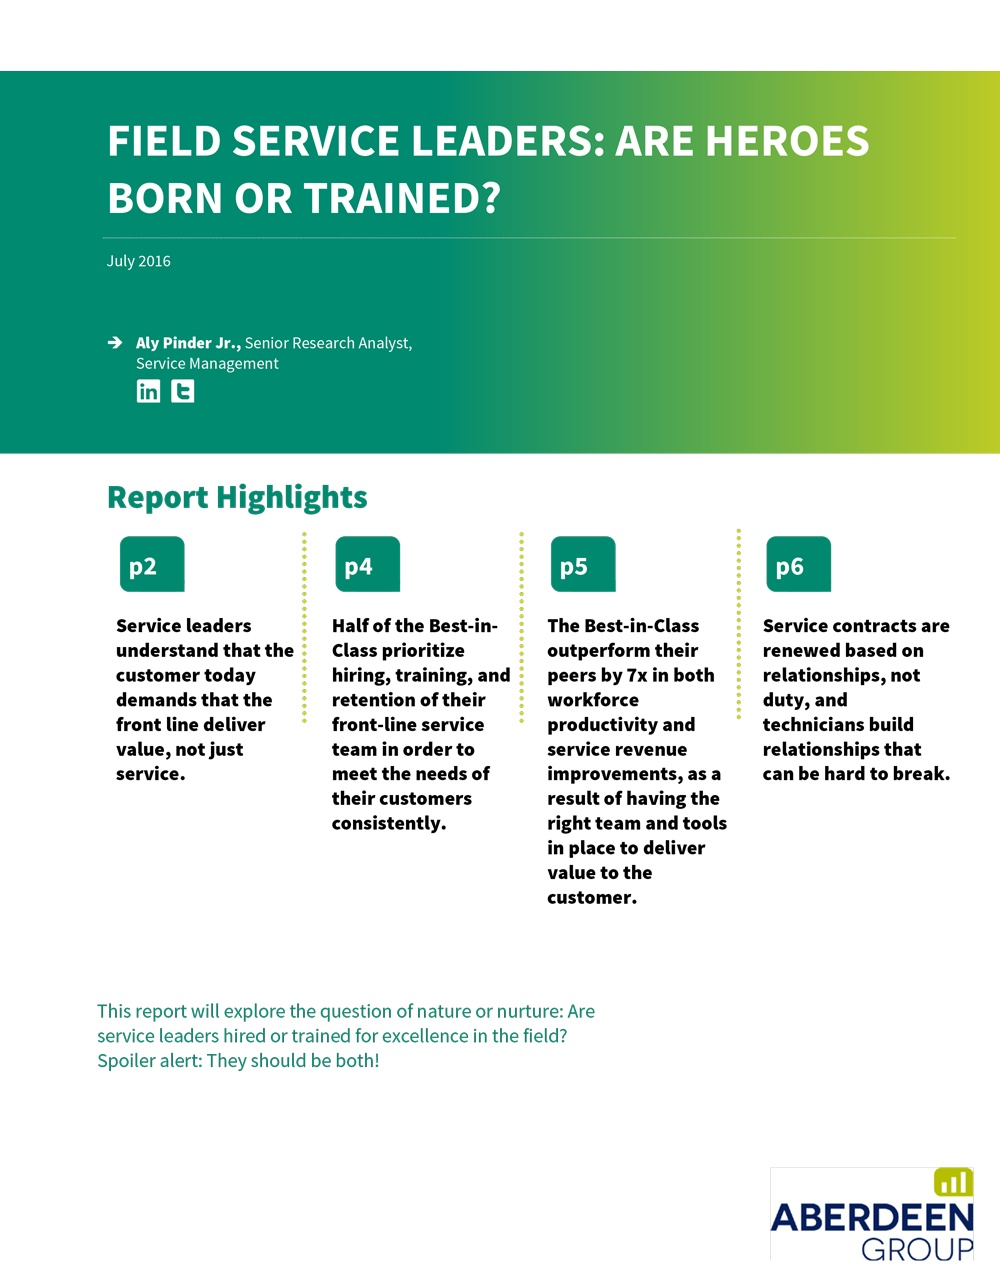 Field Service Leaders: Are Heroes Born or Trained?